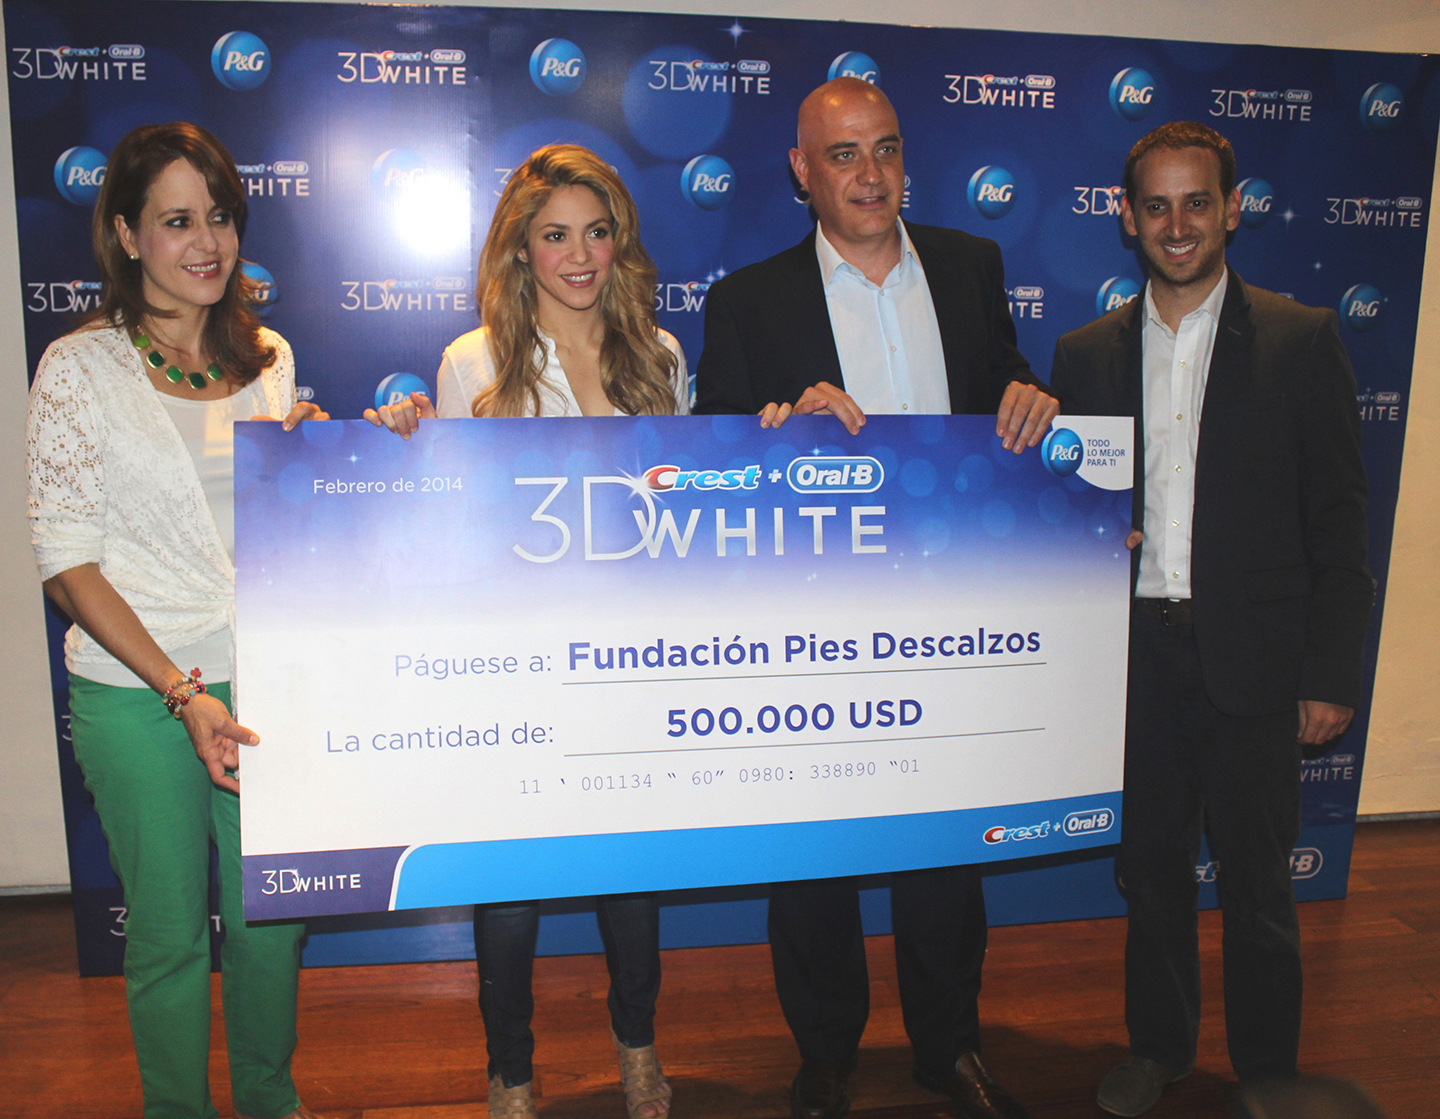 Oral-B & Crest 3D White Donate $500,000 to Shakira's Pies Descalzos